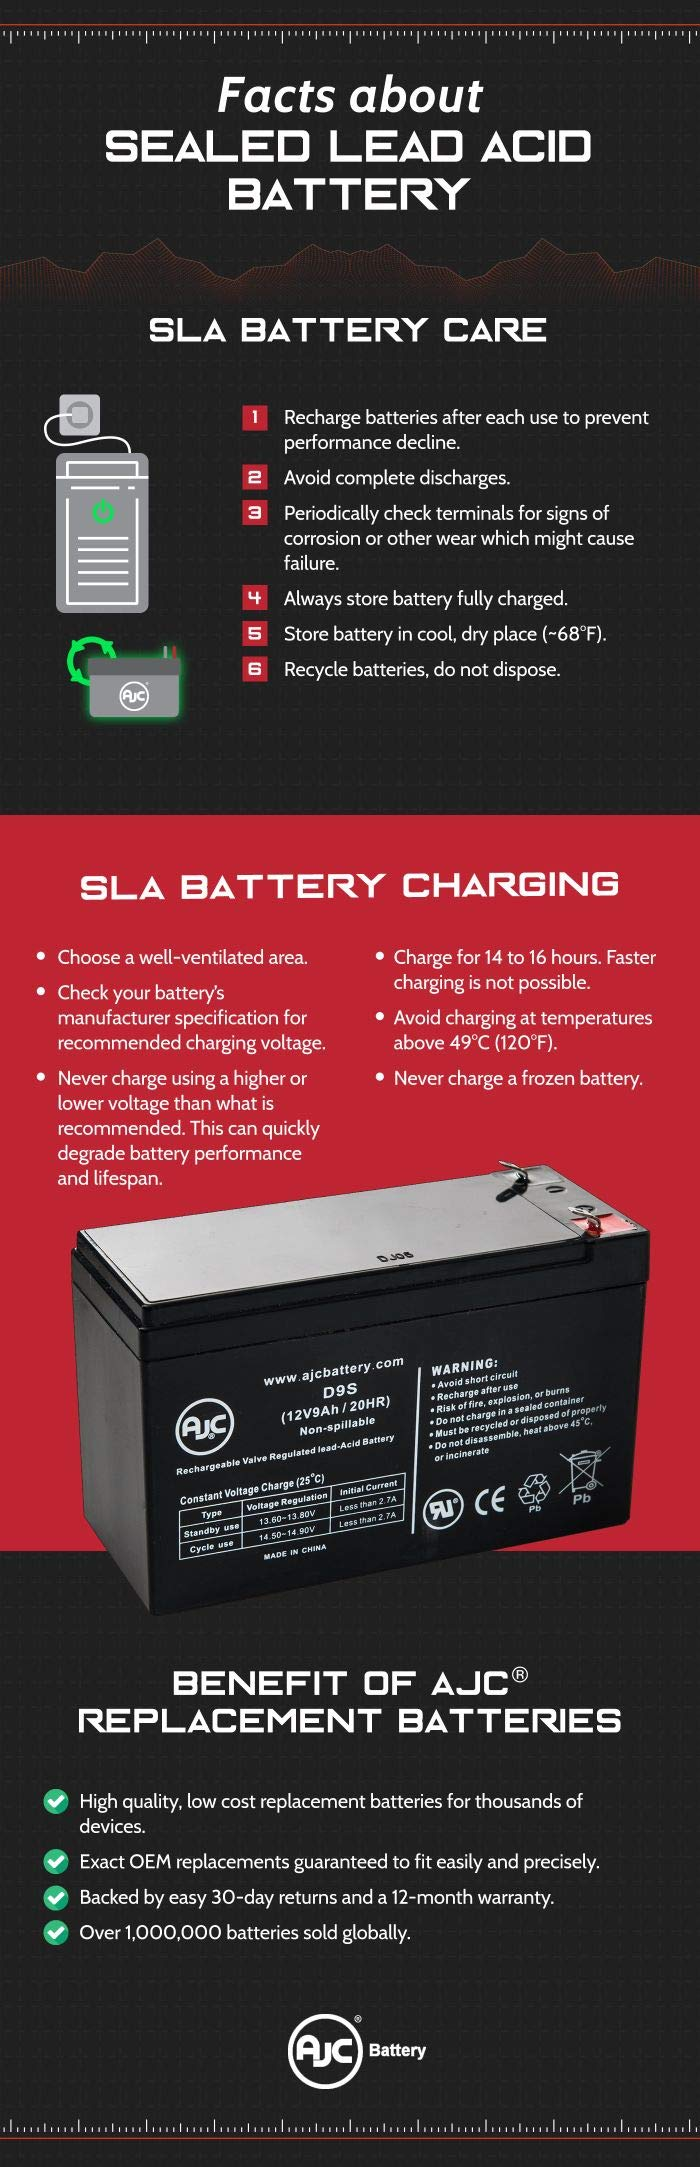 Toyo 3FM4 Sealed Lead Acid - AGM - VRLA Battery - This is an AJC Brand Replacement